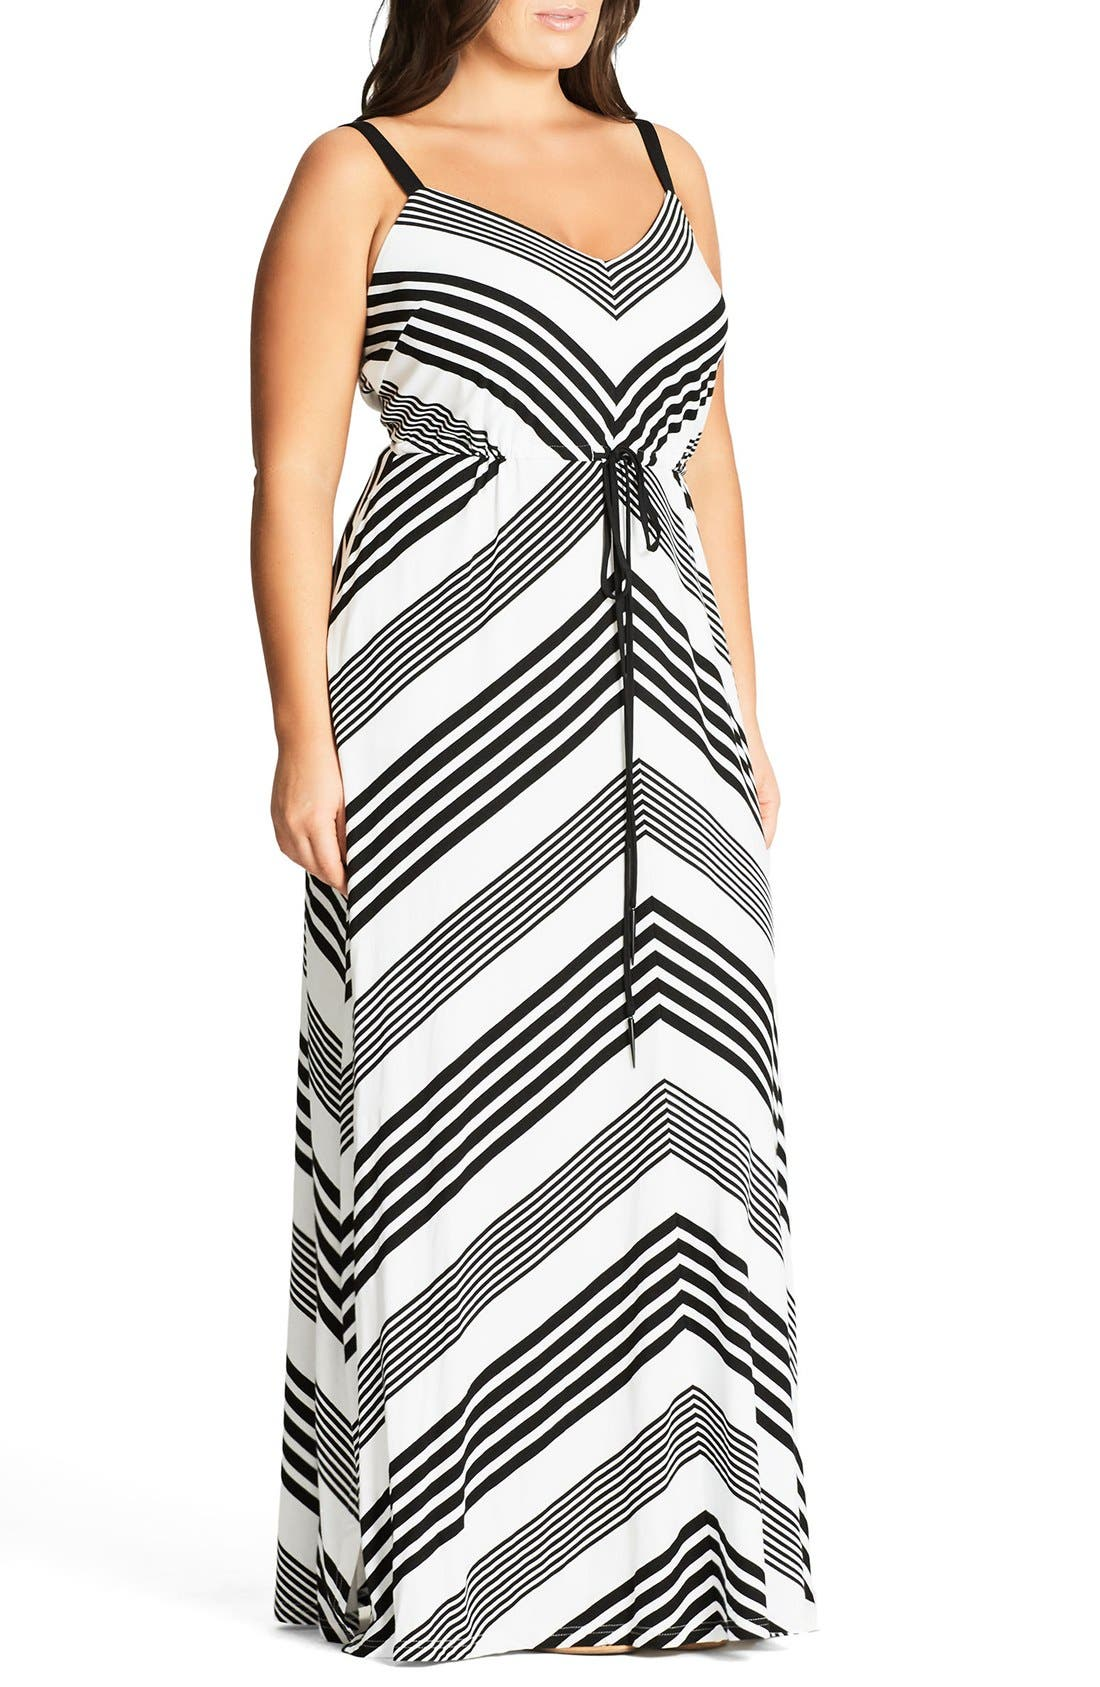 Stripe Maxi Dress,                             Alternate thumbnail 7, color,                             001